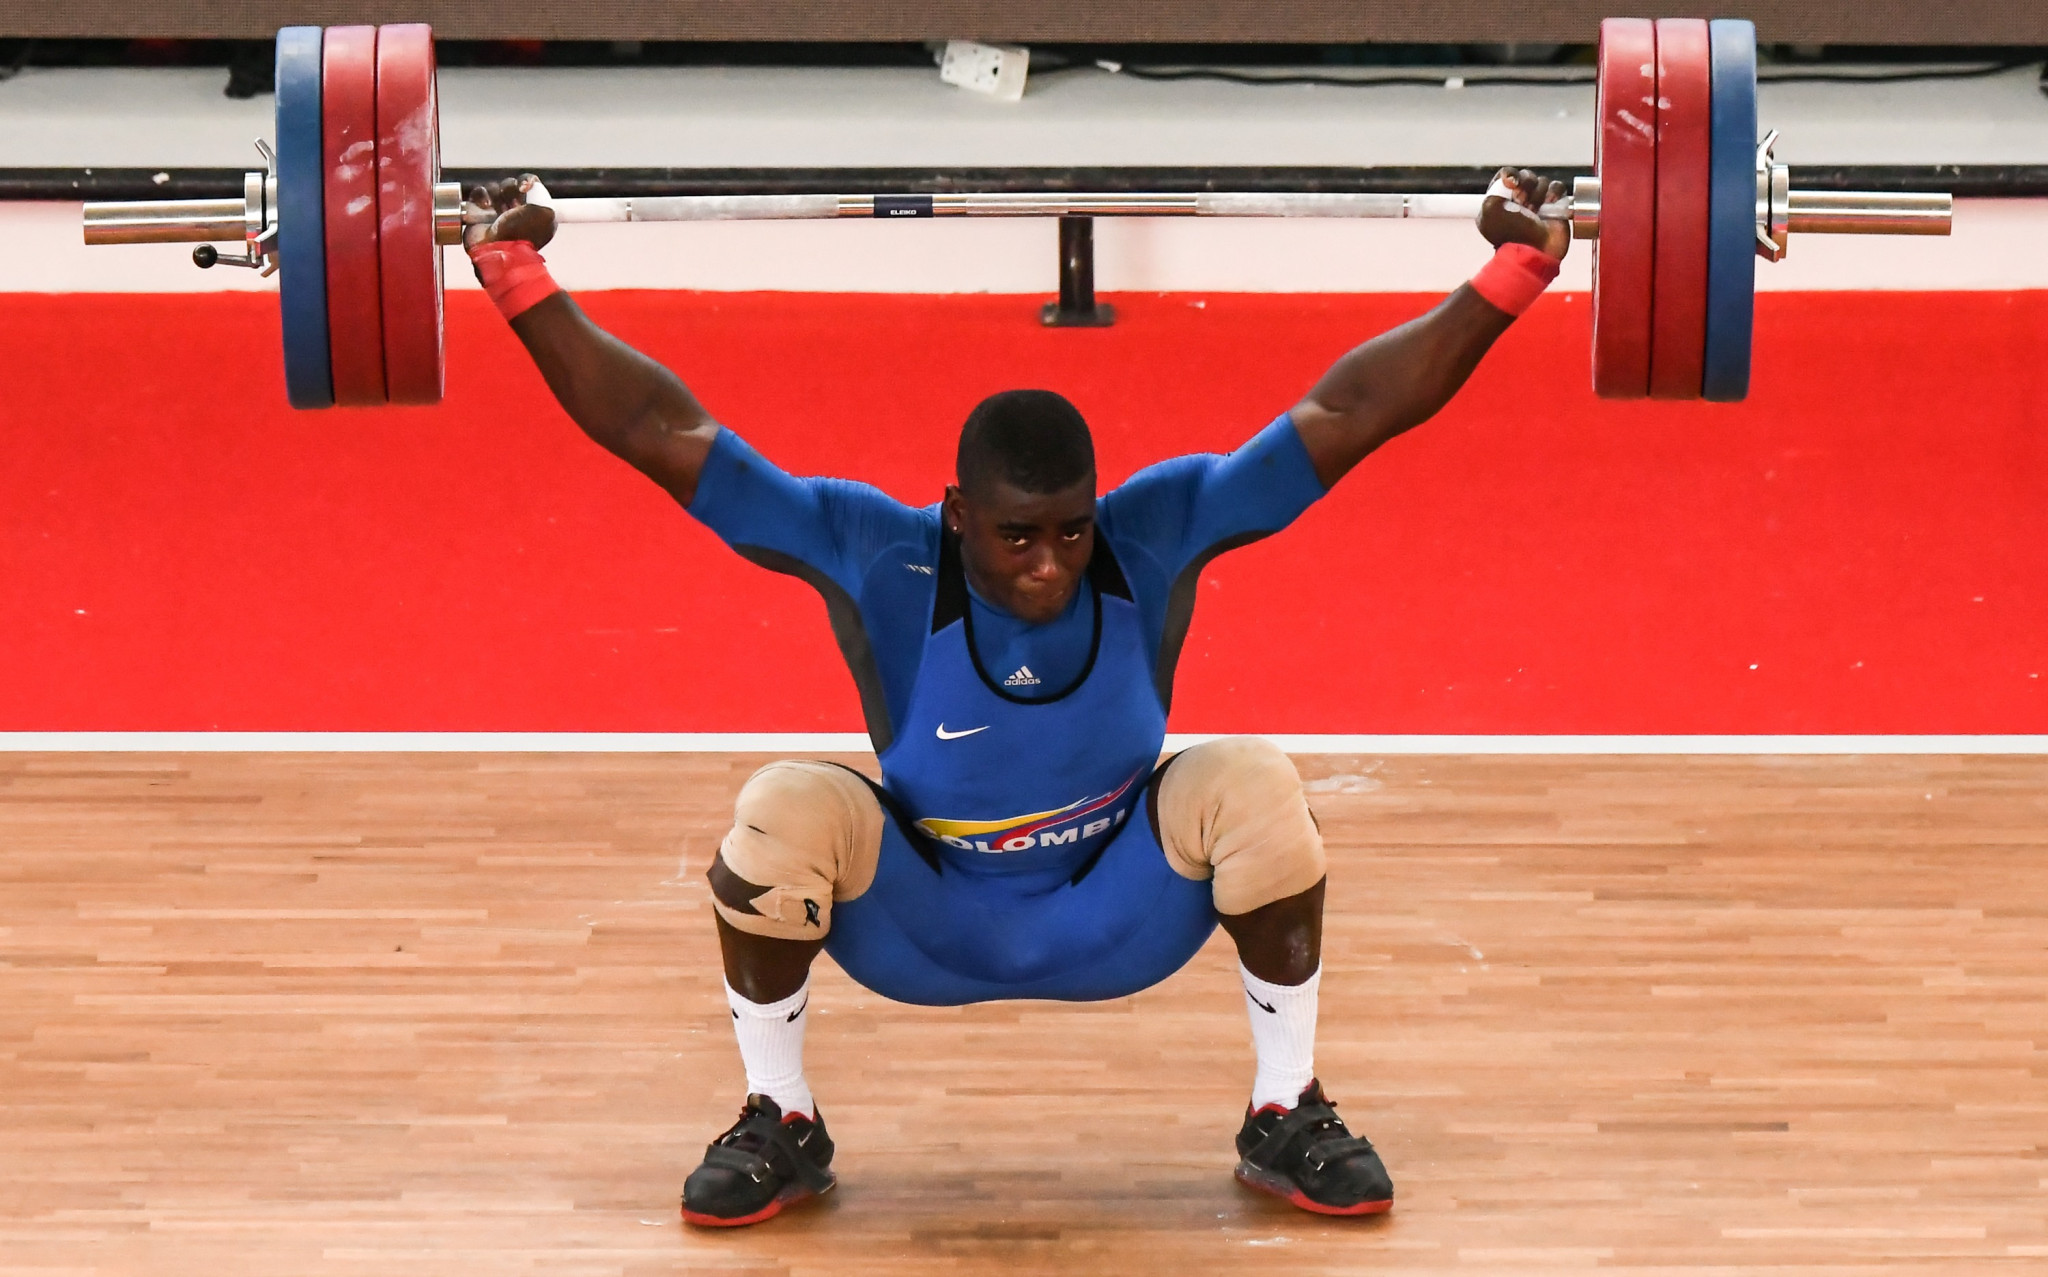 Jhonatan Rivas of Colombia won the men's 96kg at the Pan American Weightlifting Championships in Santo Domingo ©Getty Images